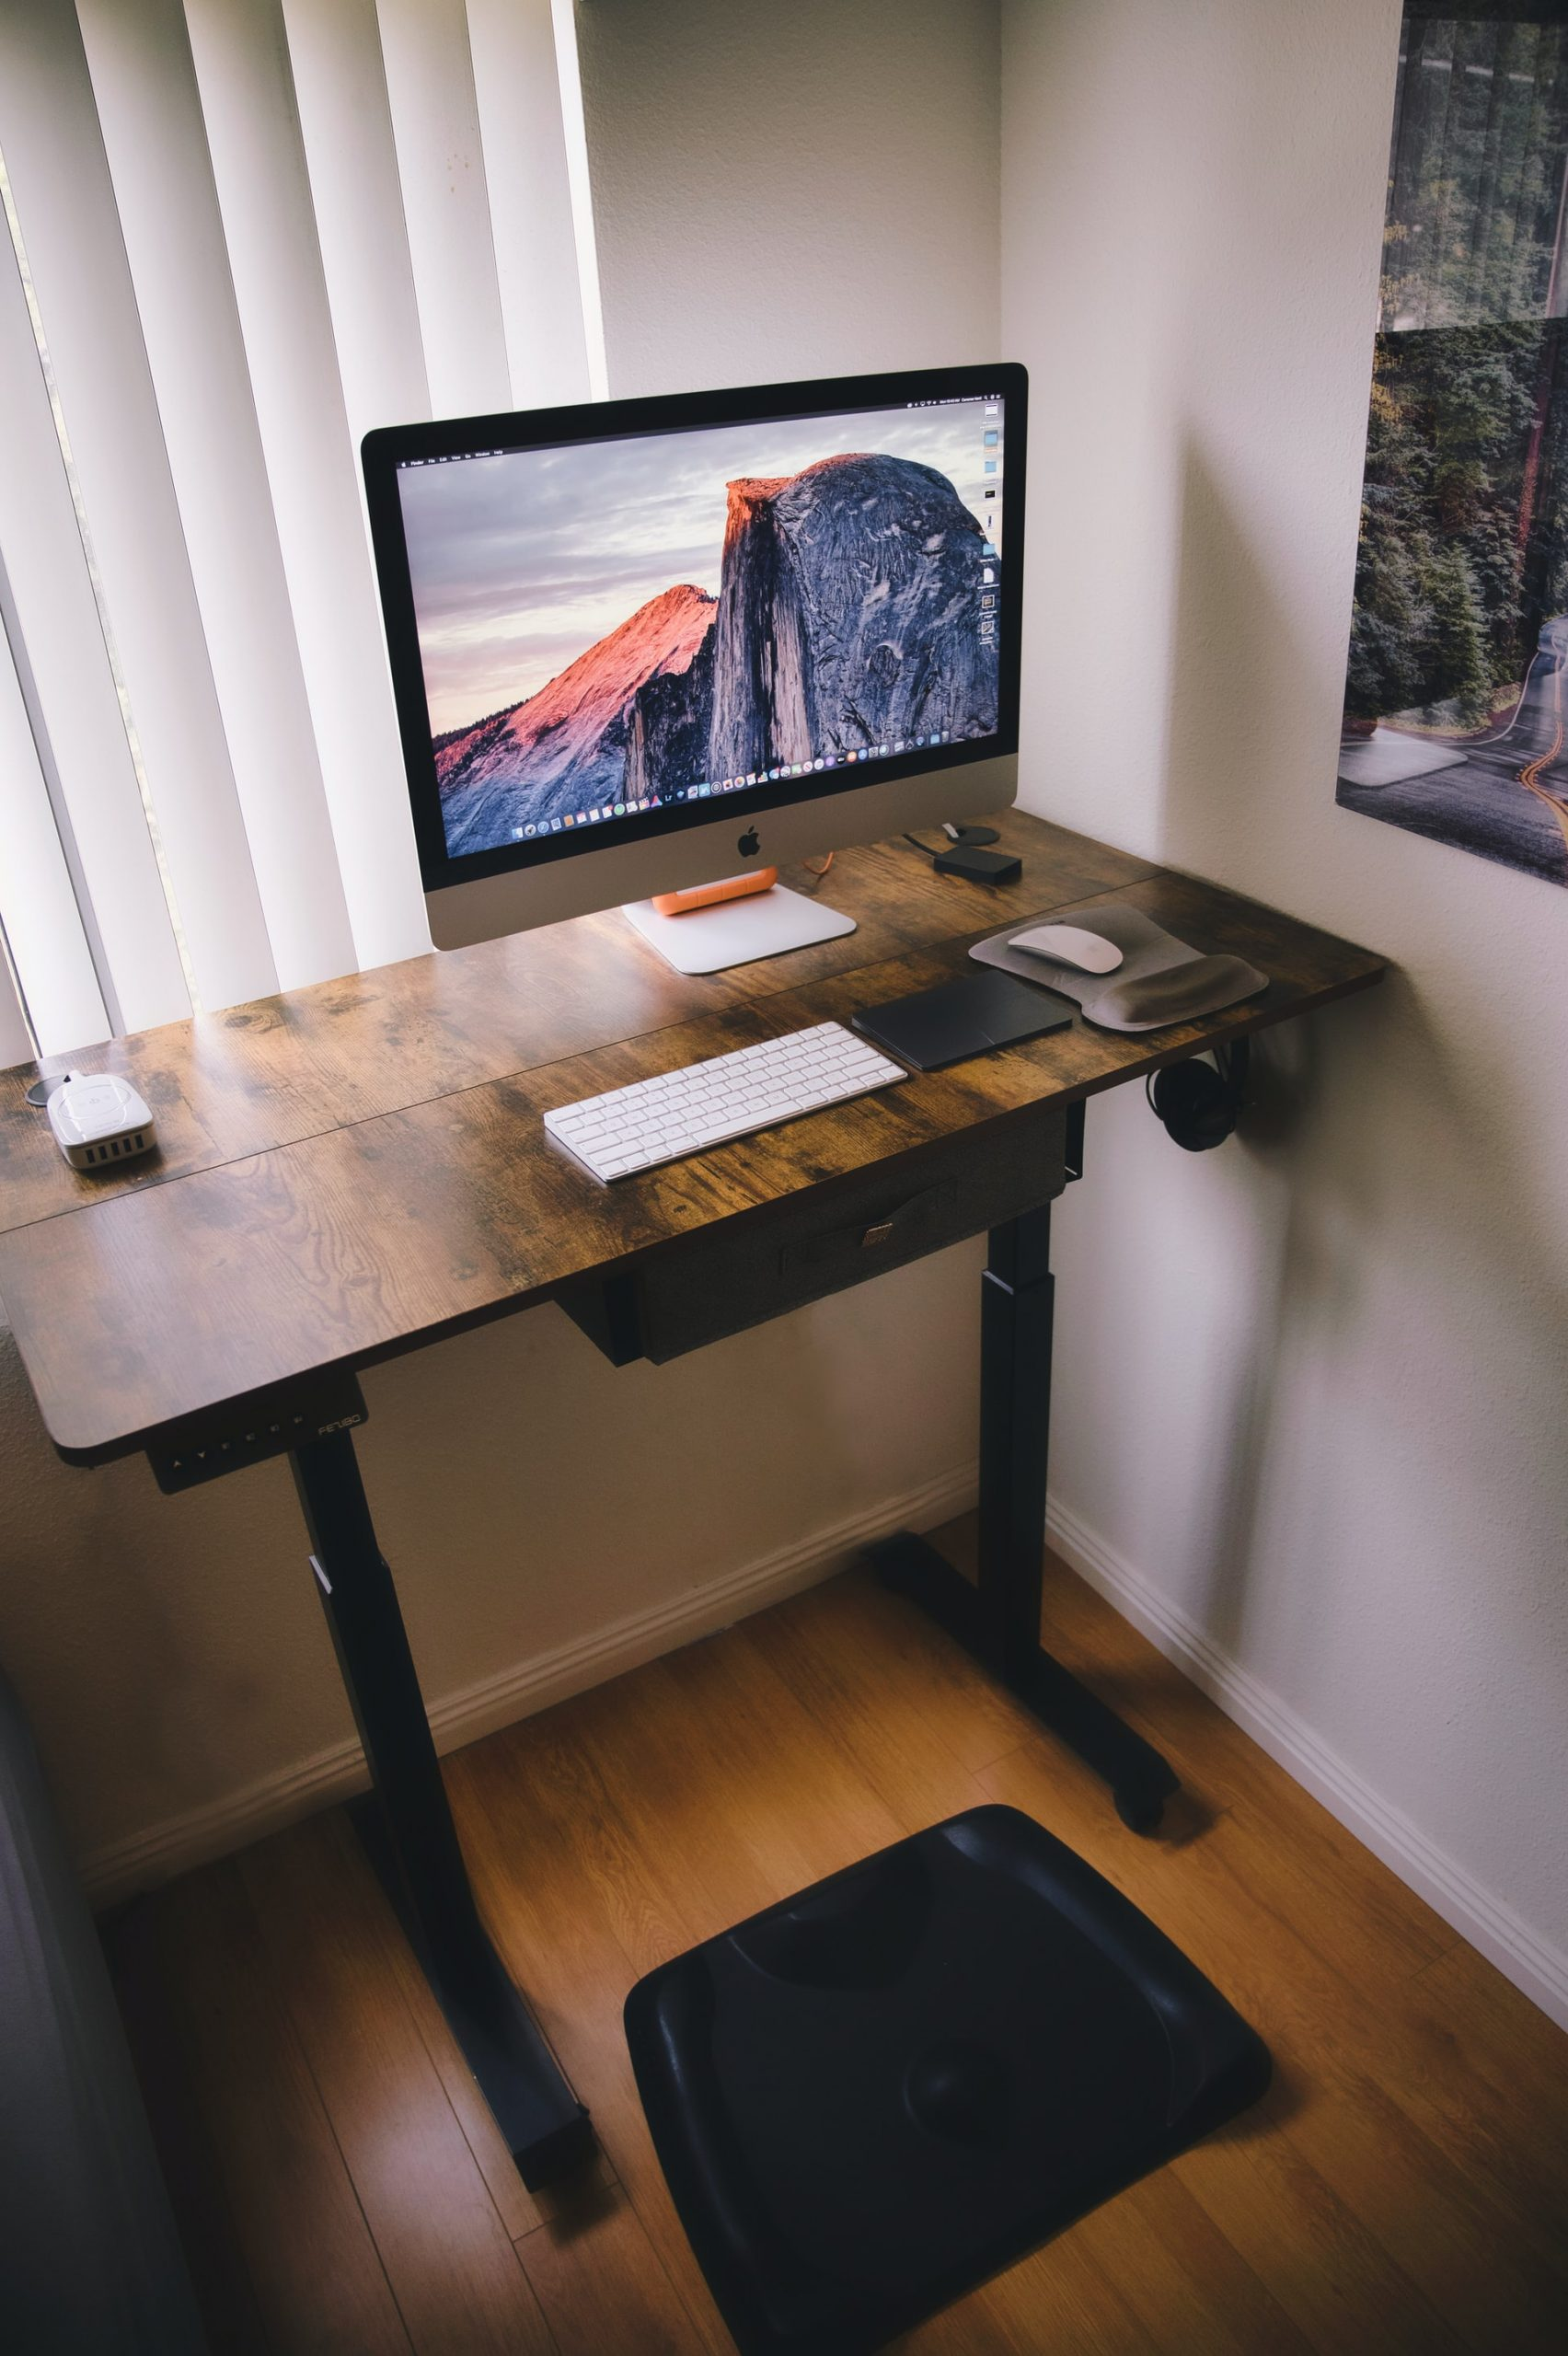 The Benefits of Making Your Home Office as Ergonomic as Possible